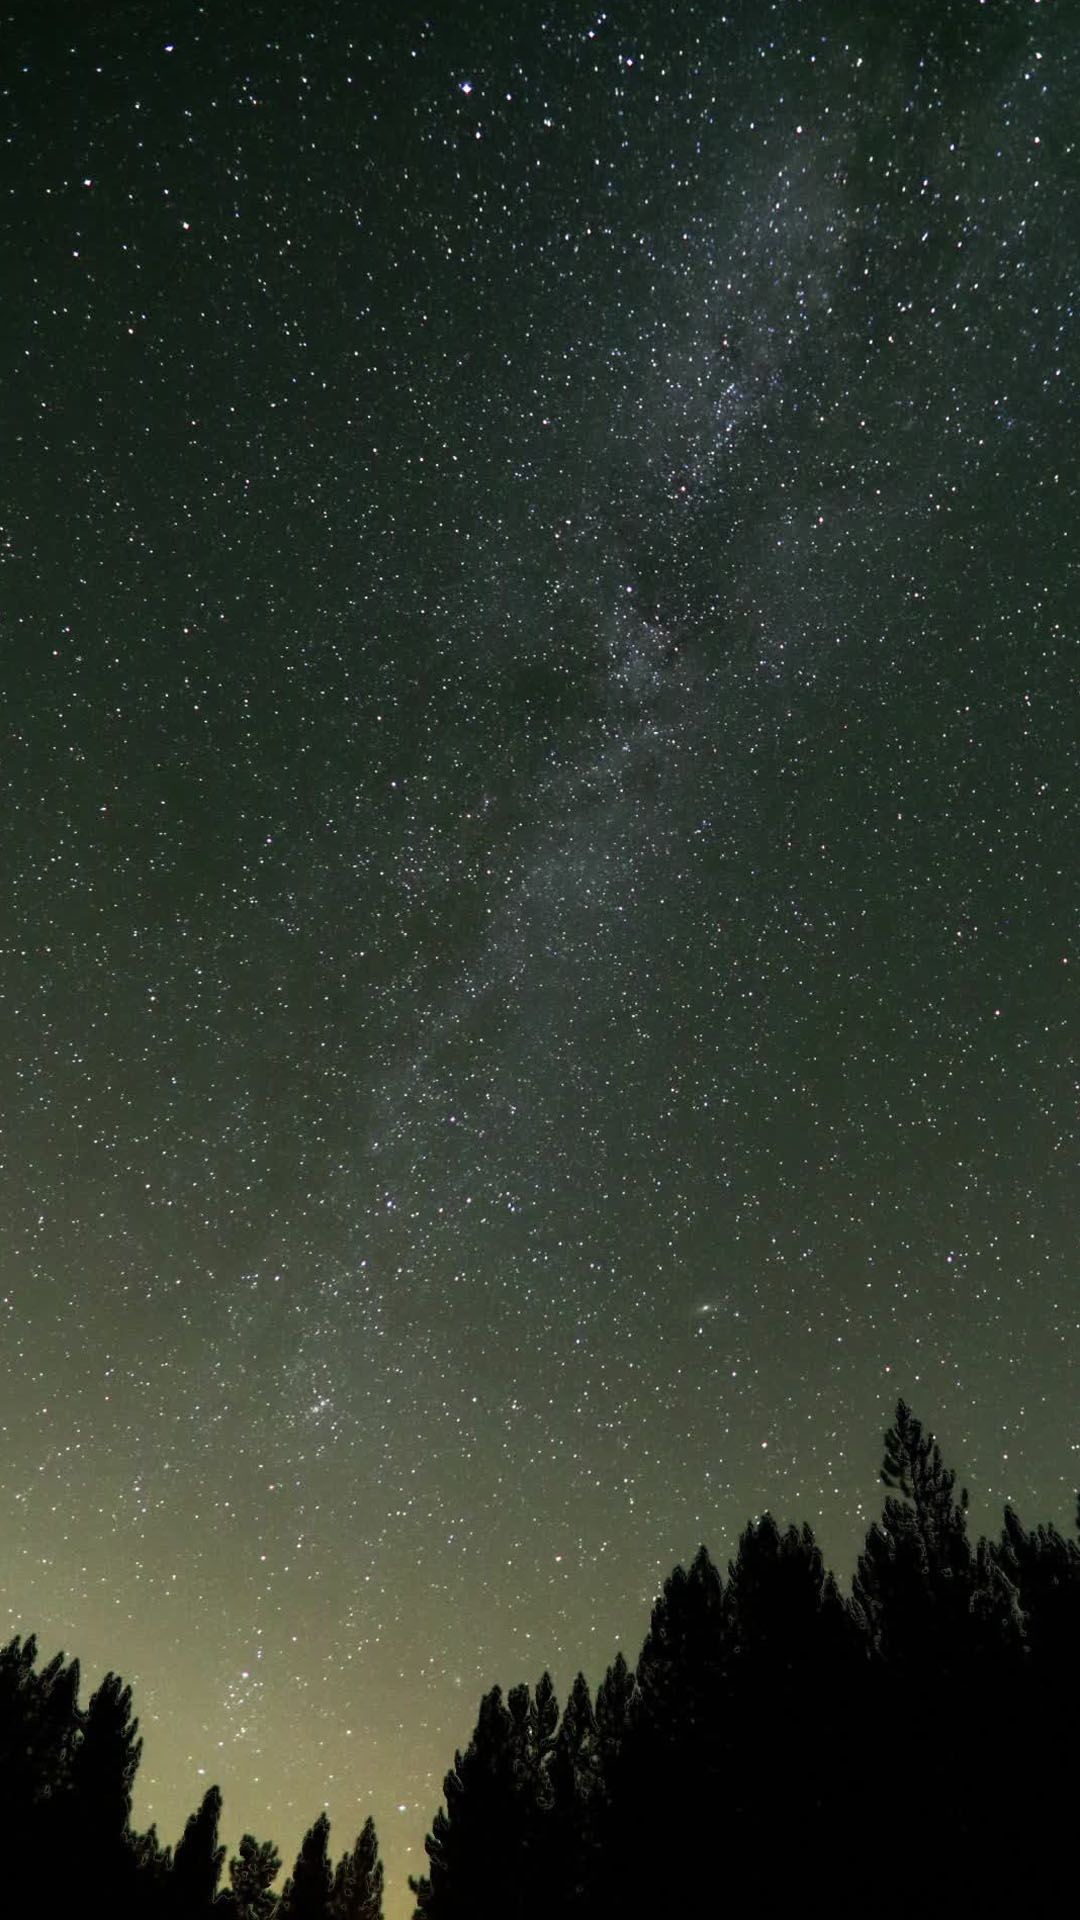 1080x1920 forest, Camping, Starry Night, Trees, Milky Way, Long Exposure .. Wallpapers  ...